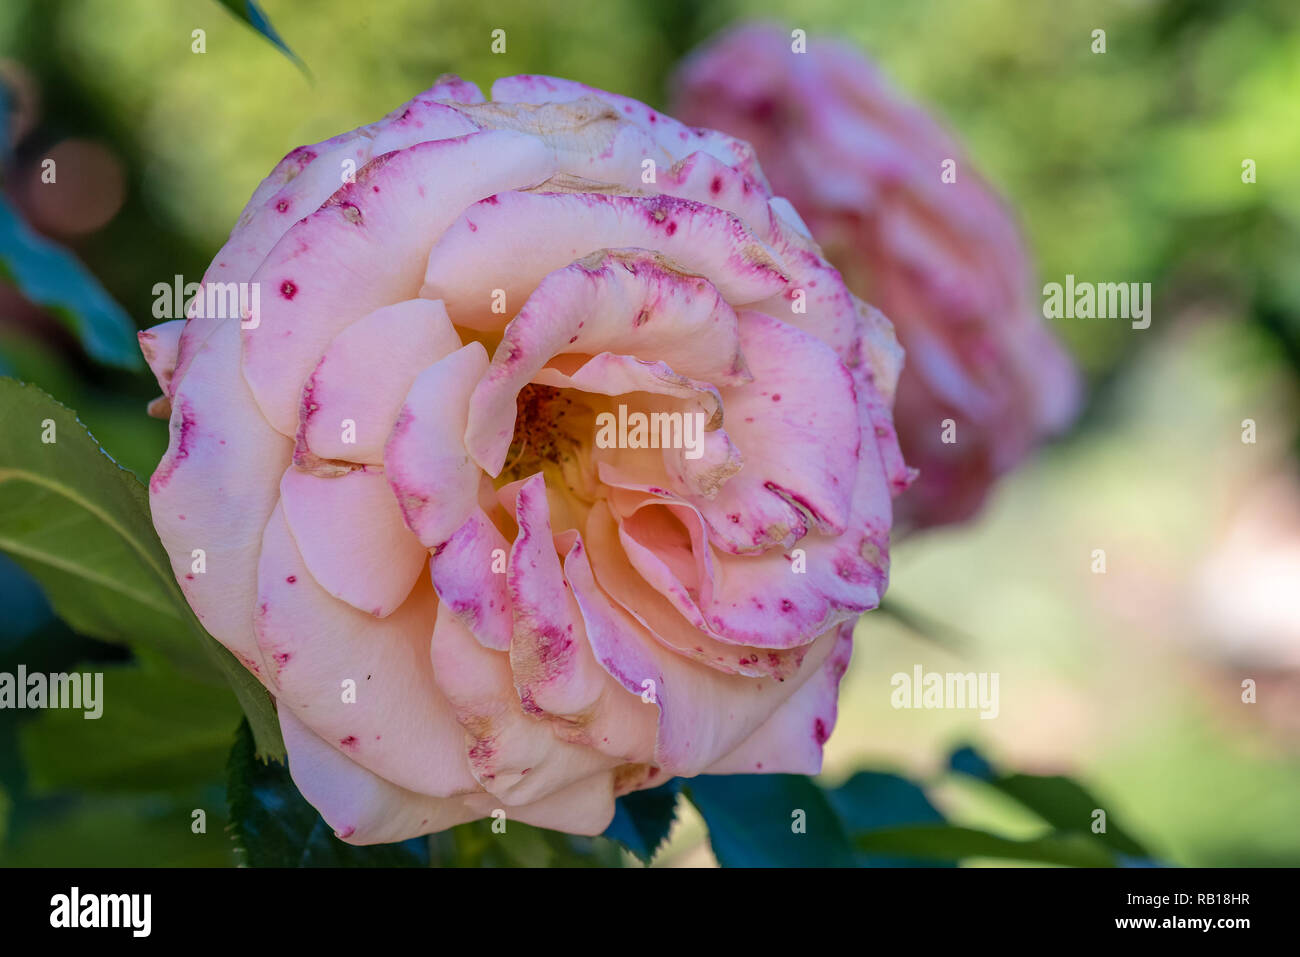 Color outdoor floral macro of a single isolated pink white rose  speckled/flecked blossom, natural blurred green background,detailed texture,sunny - Stock Image